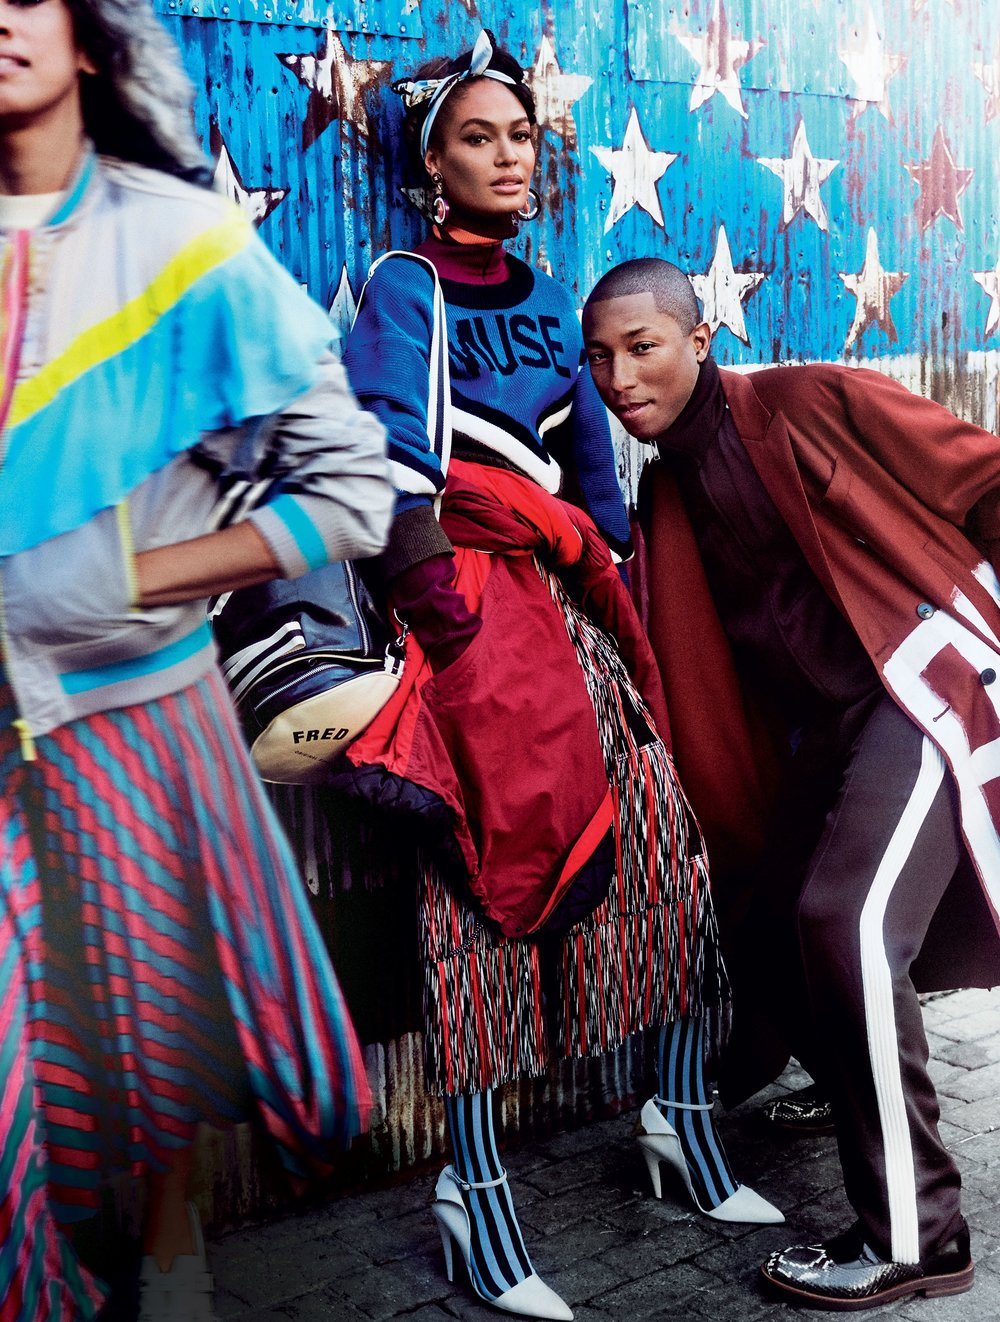 02-pharrell-williams-vogue-december-2017-cover.jpg